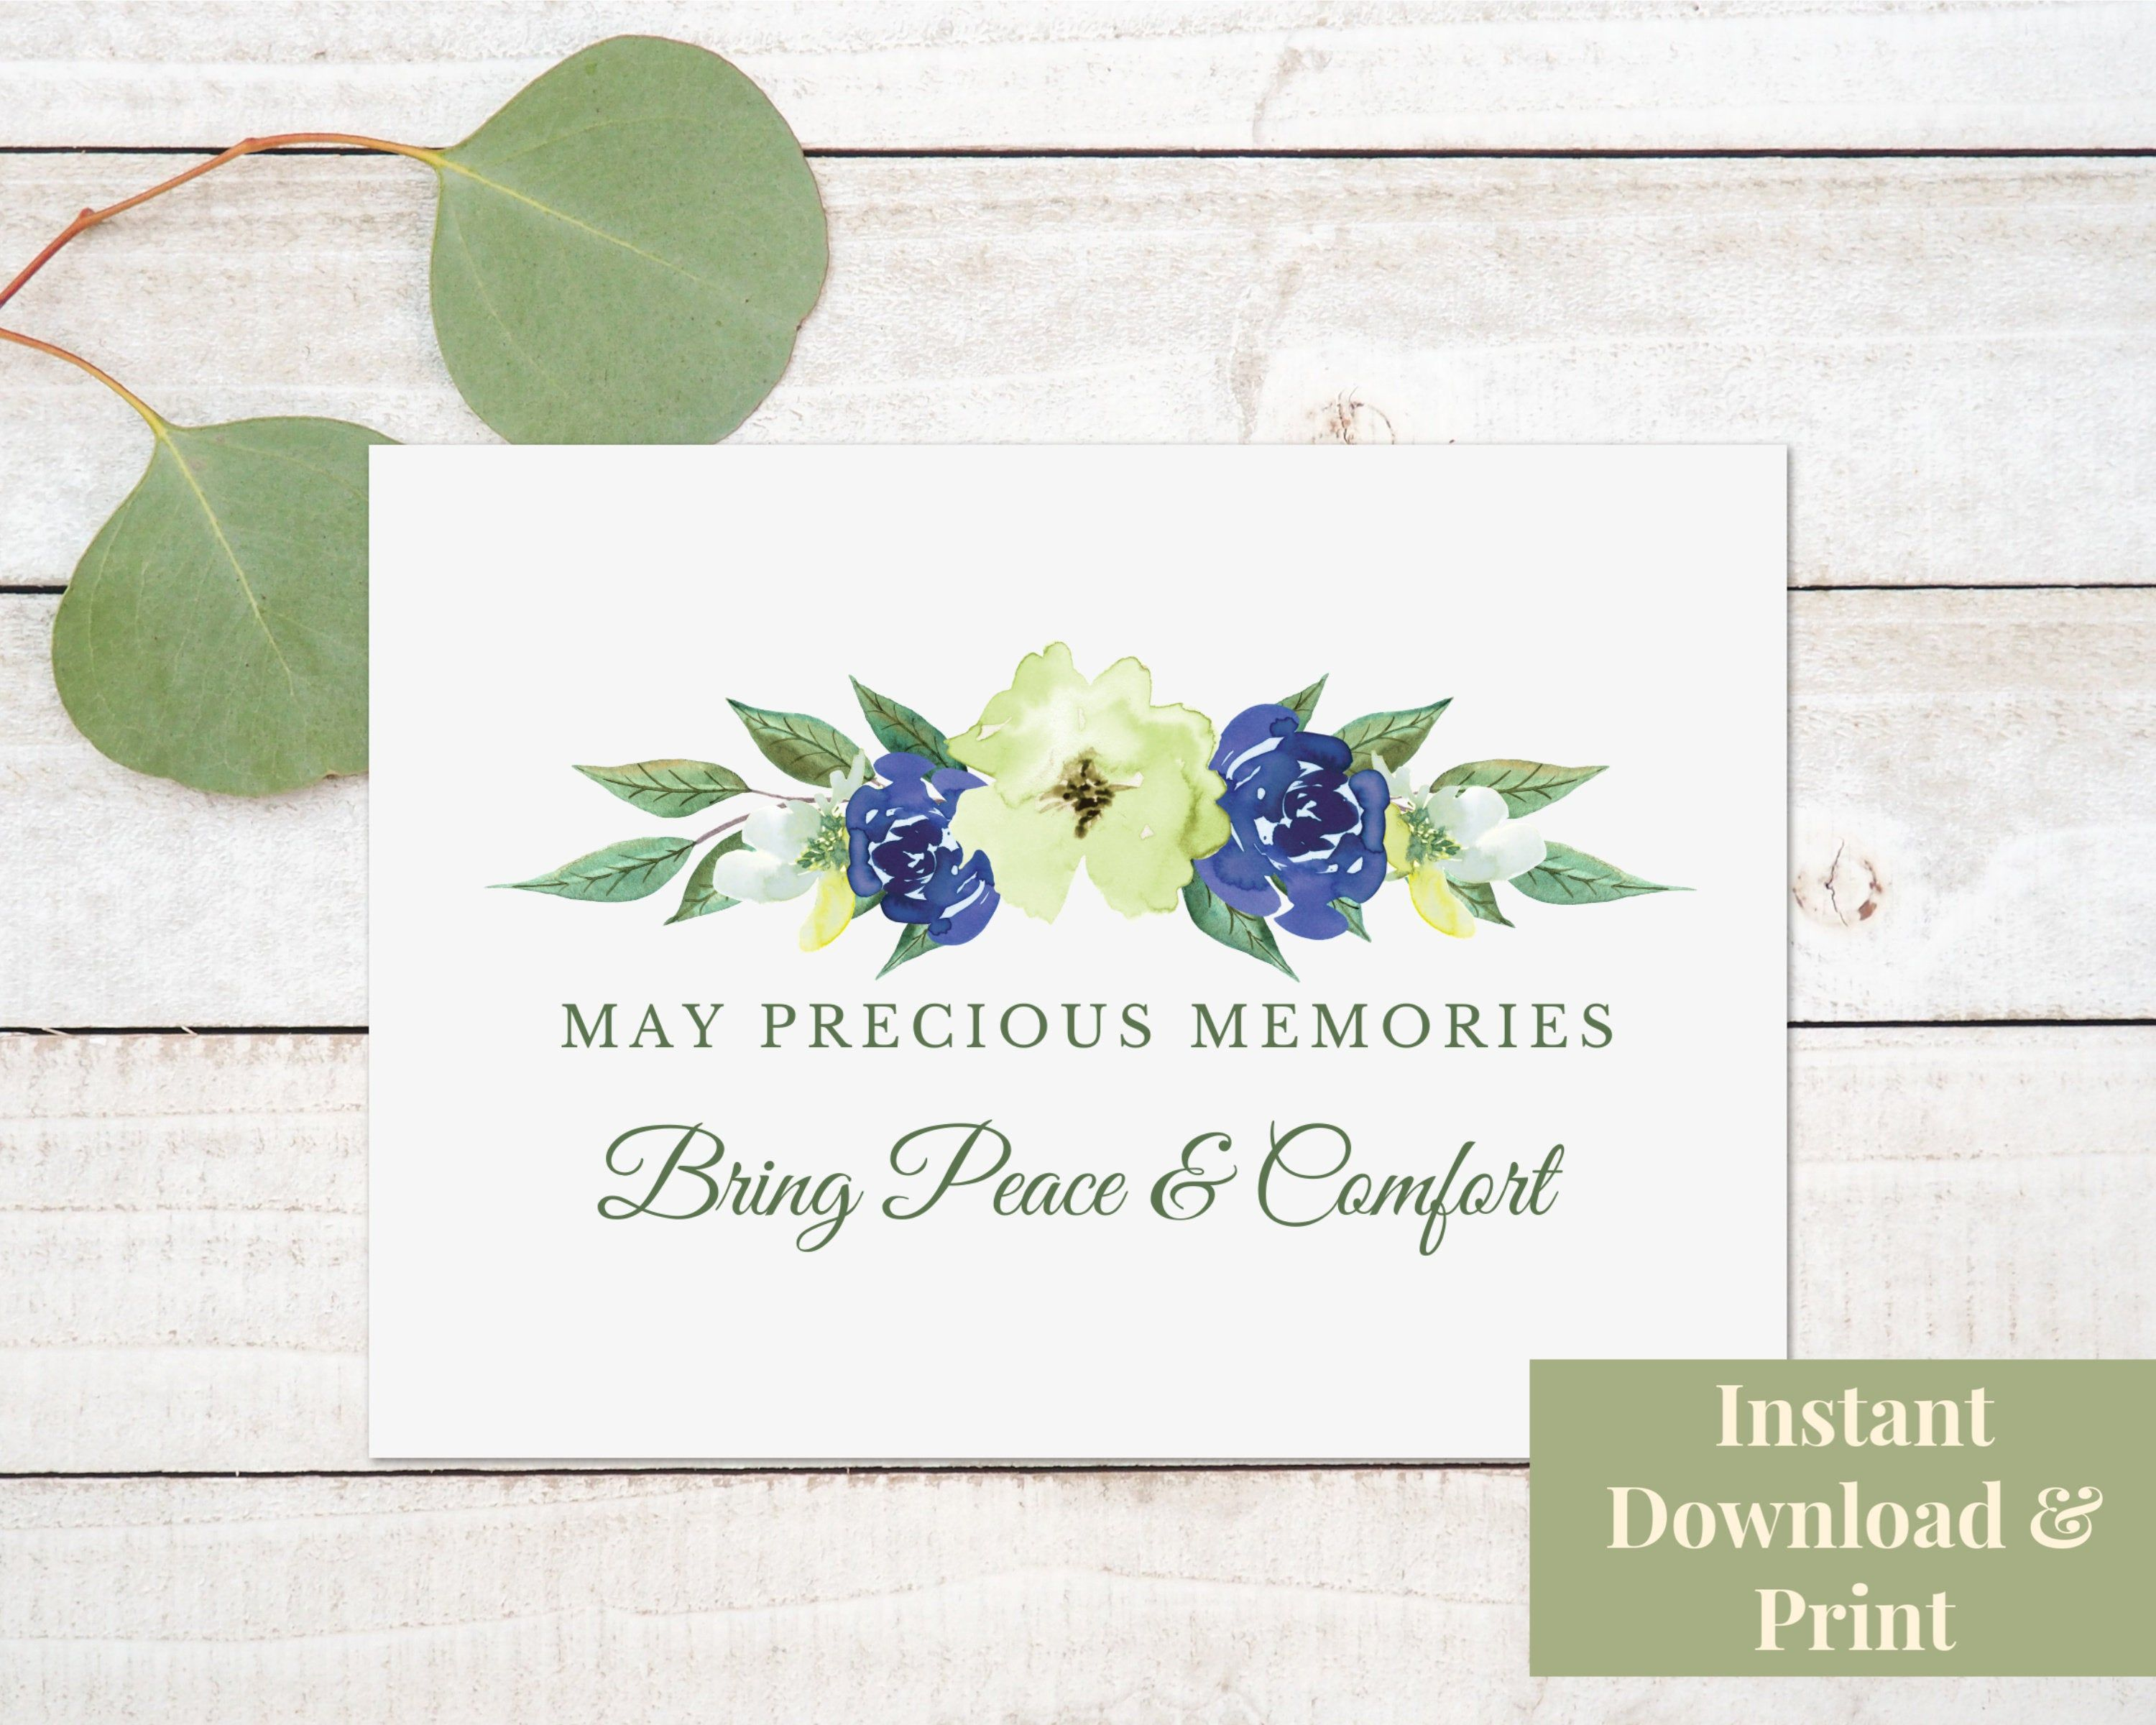 Sympathy Card Printable With Deepest Sympathy Condolences Card Bereavement Card Instant Downloa Condolence Card Printable Cards Mother S Day Greeting Cards